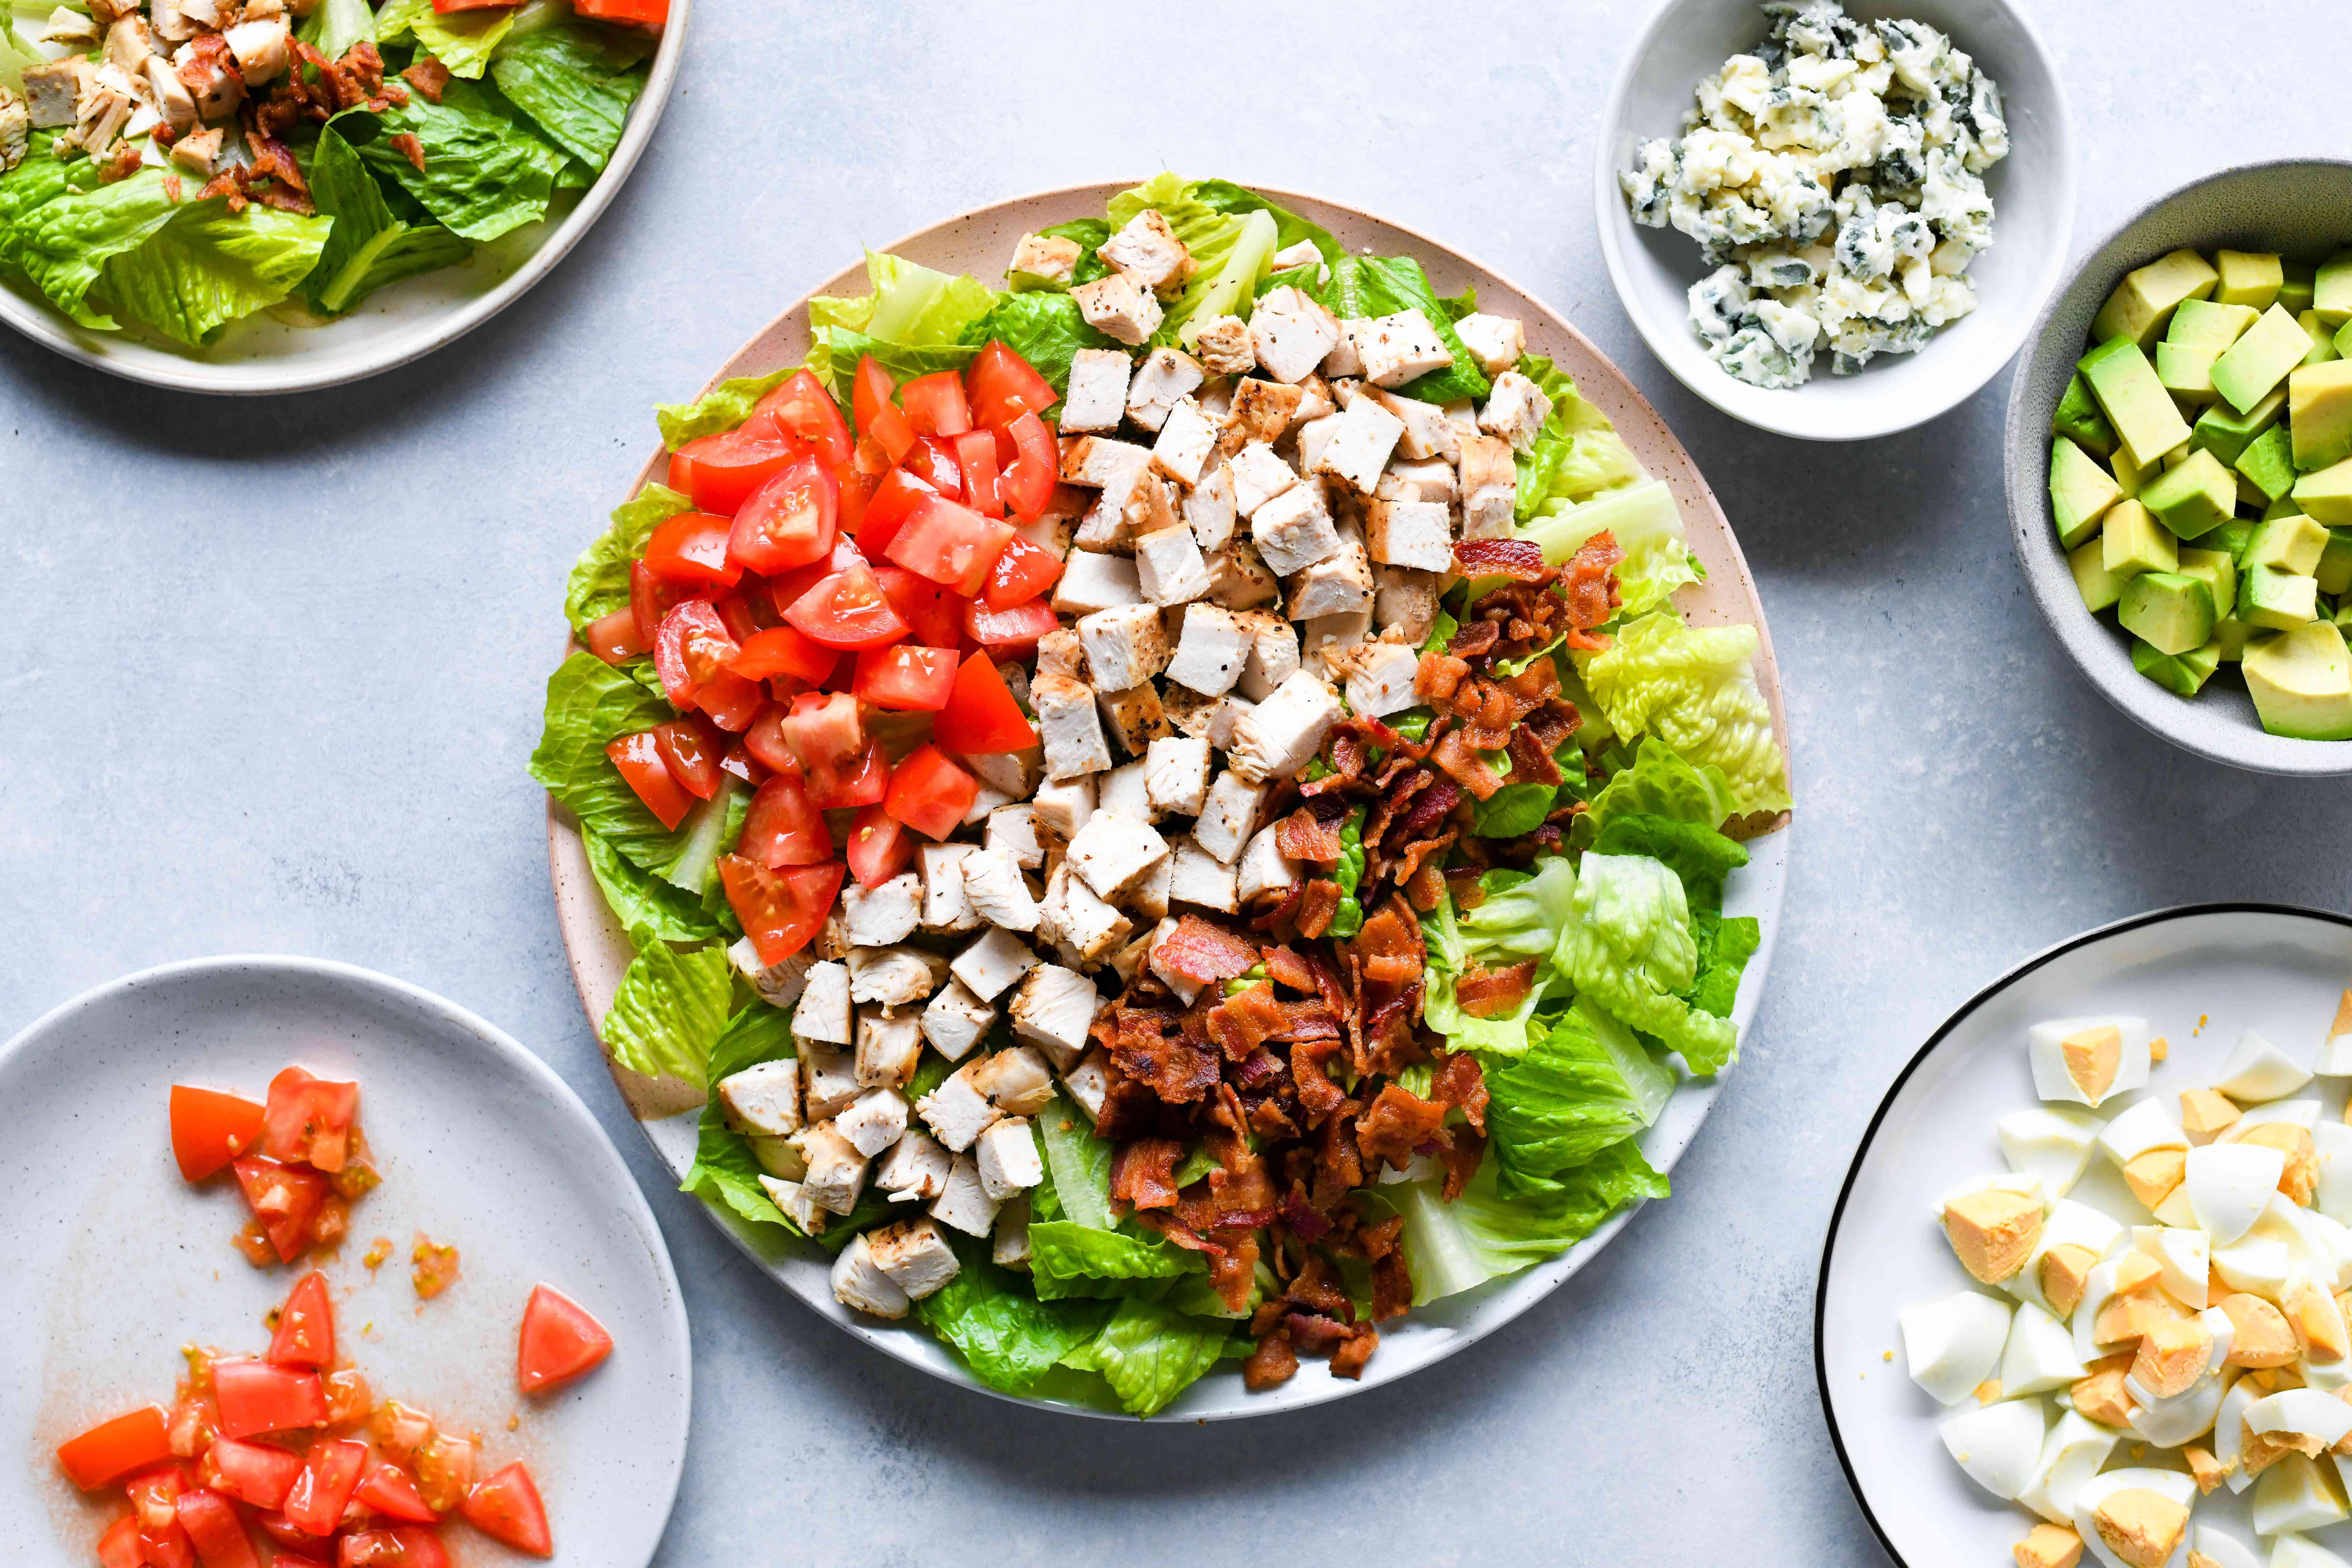 lettuce, chicken, tomatoes and bacon on a plate